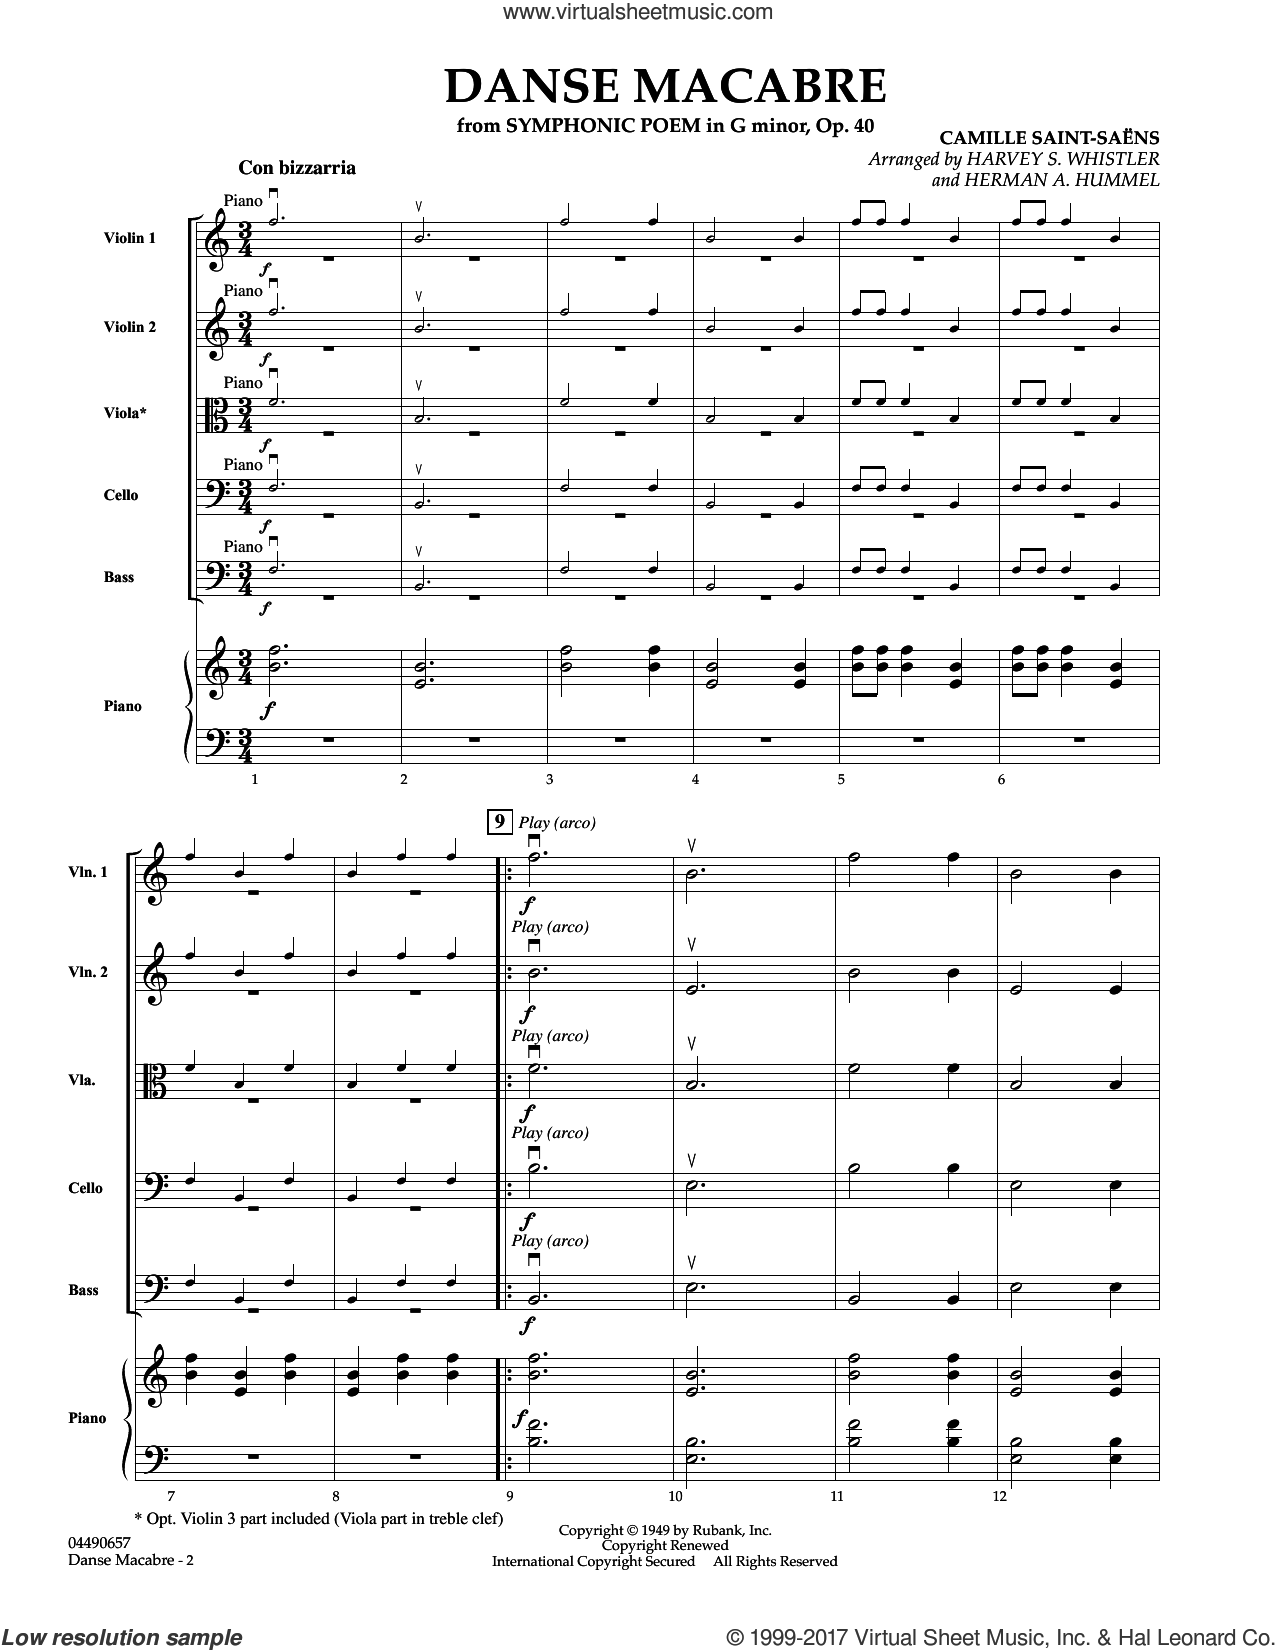 Danse Macabre (COMPLETE) sheet music for orchestra by Camille Saint-Saens, Camille Saint-SaA�A�ns, Harvey S. Whistler and Herman Hummel, classical score, intermediate skill level